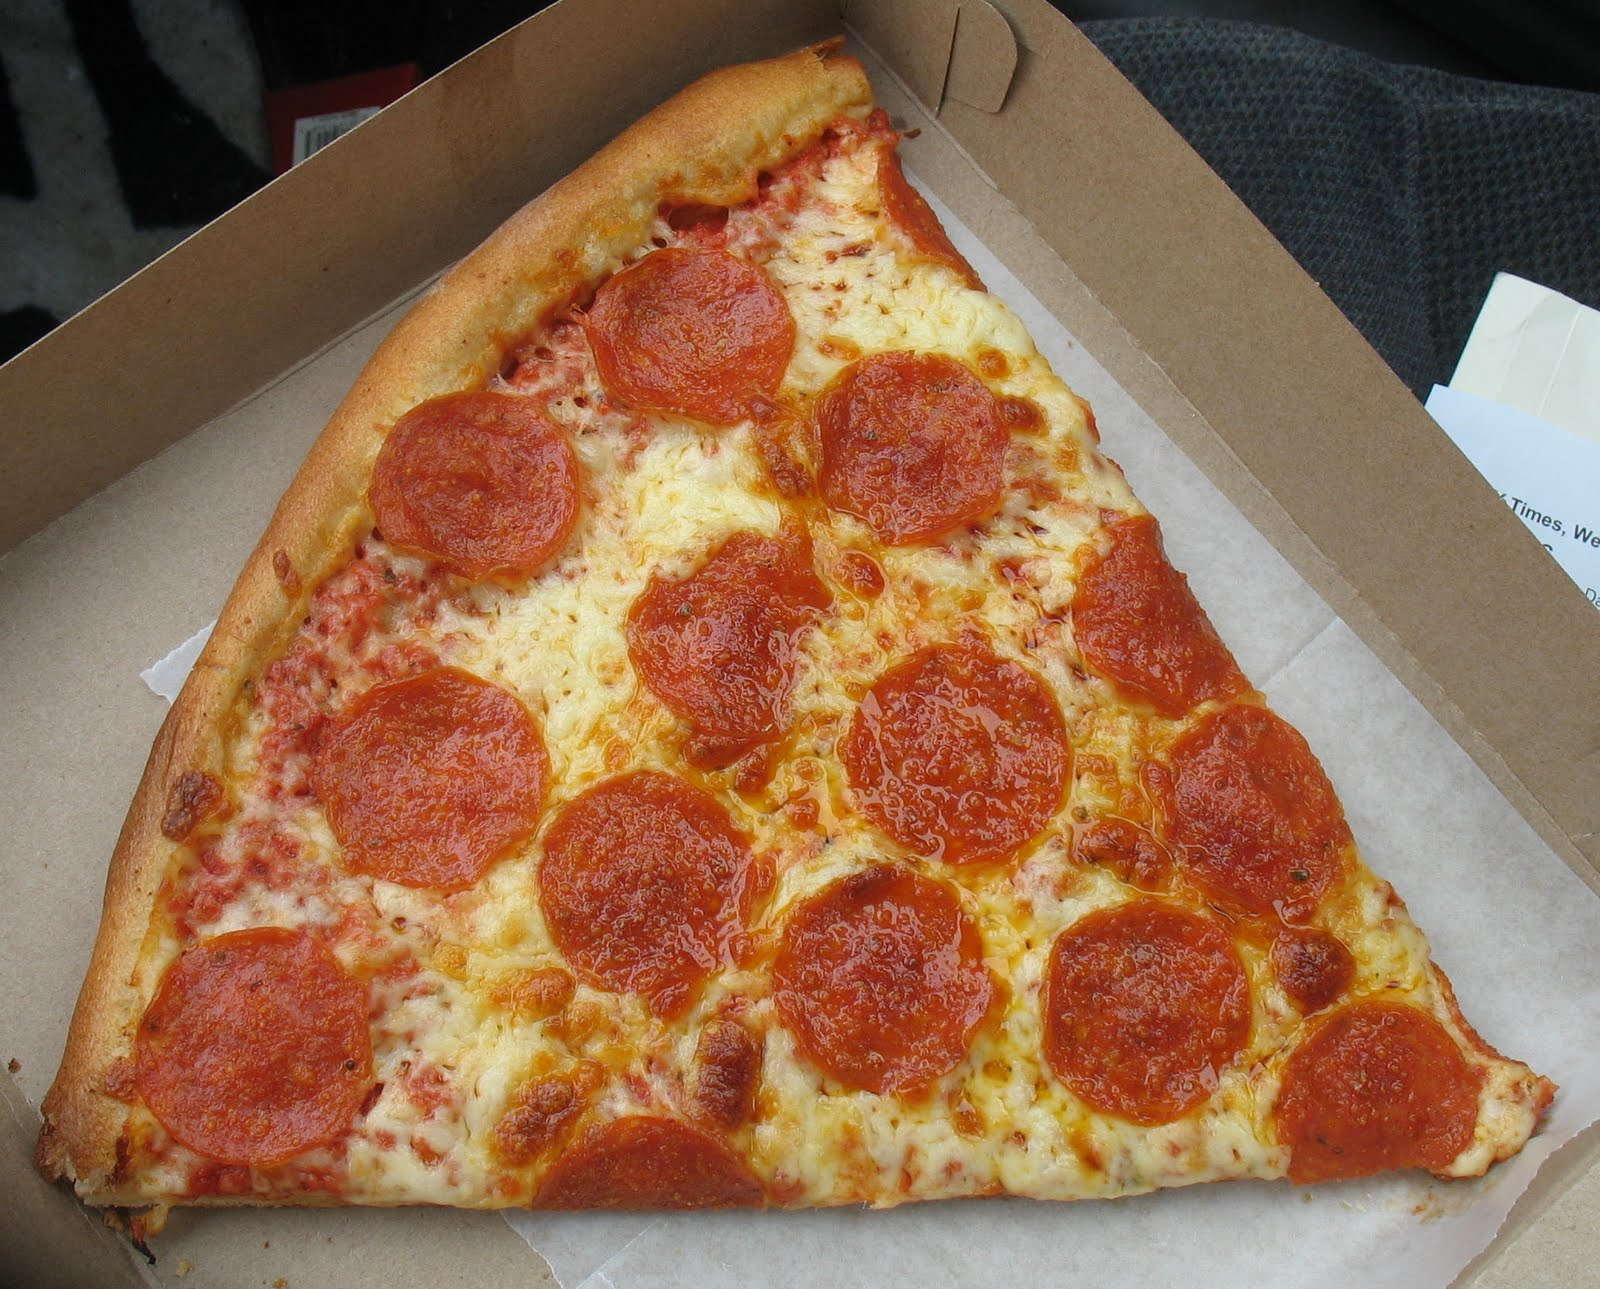 The Rochester NY Pizza Blog: Big Deal Revisited